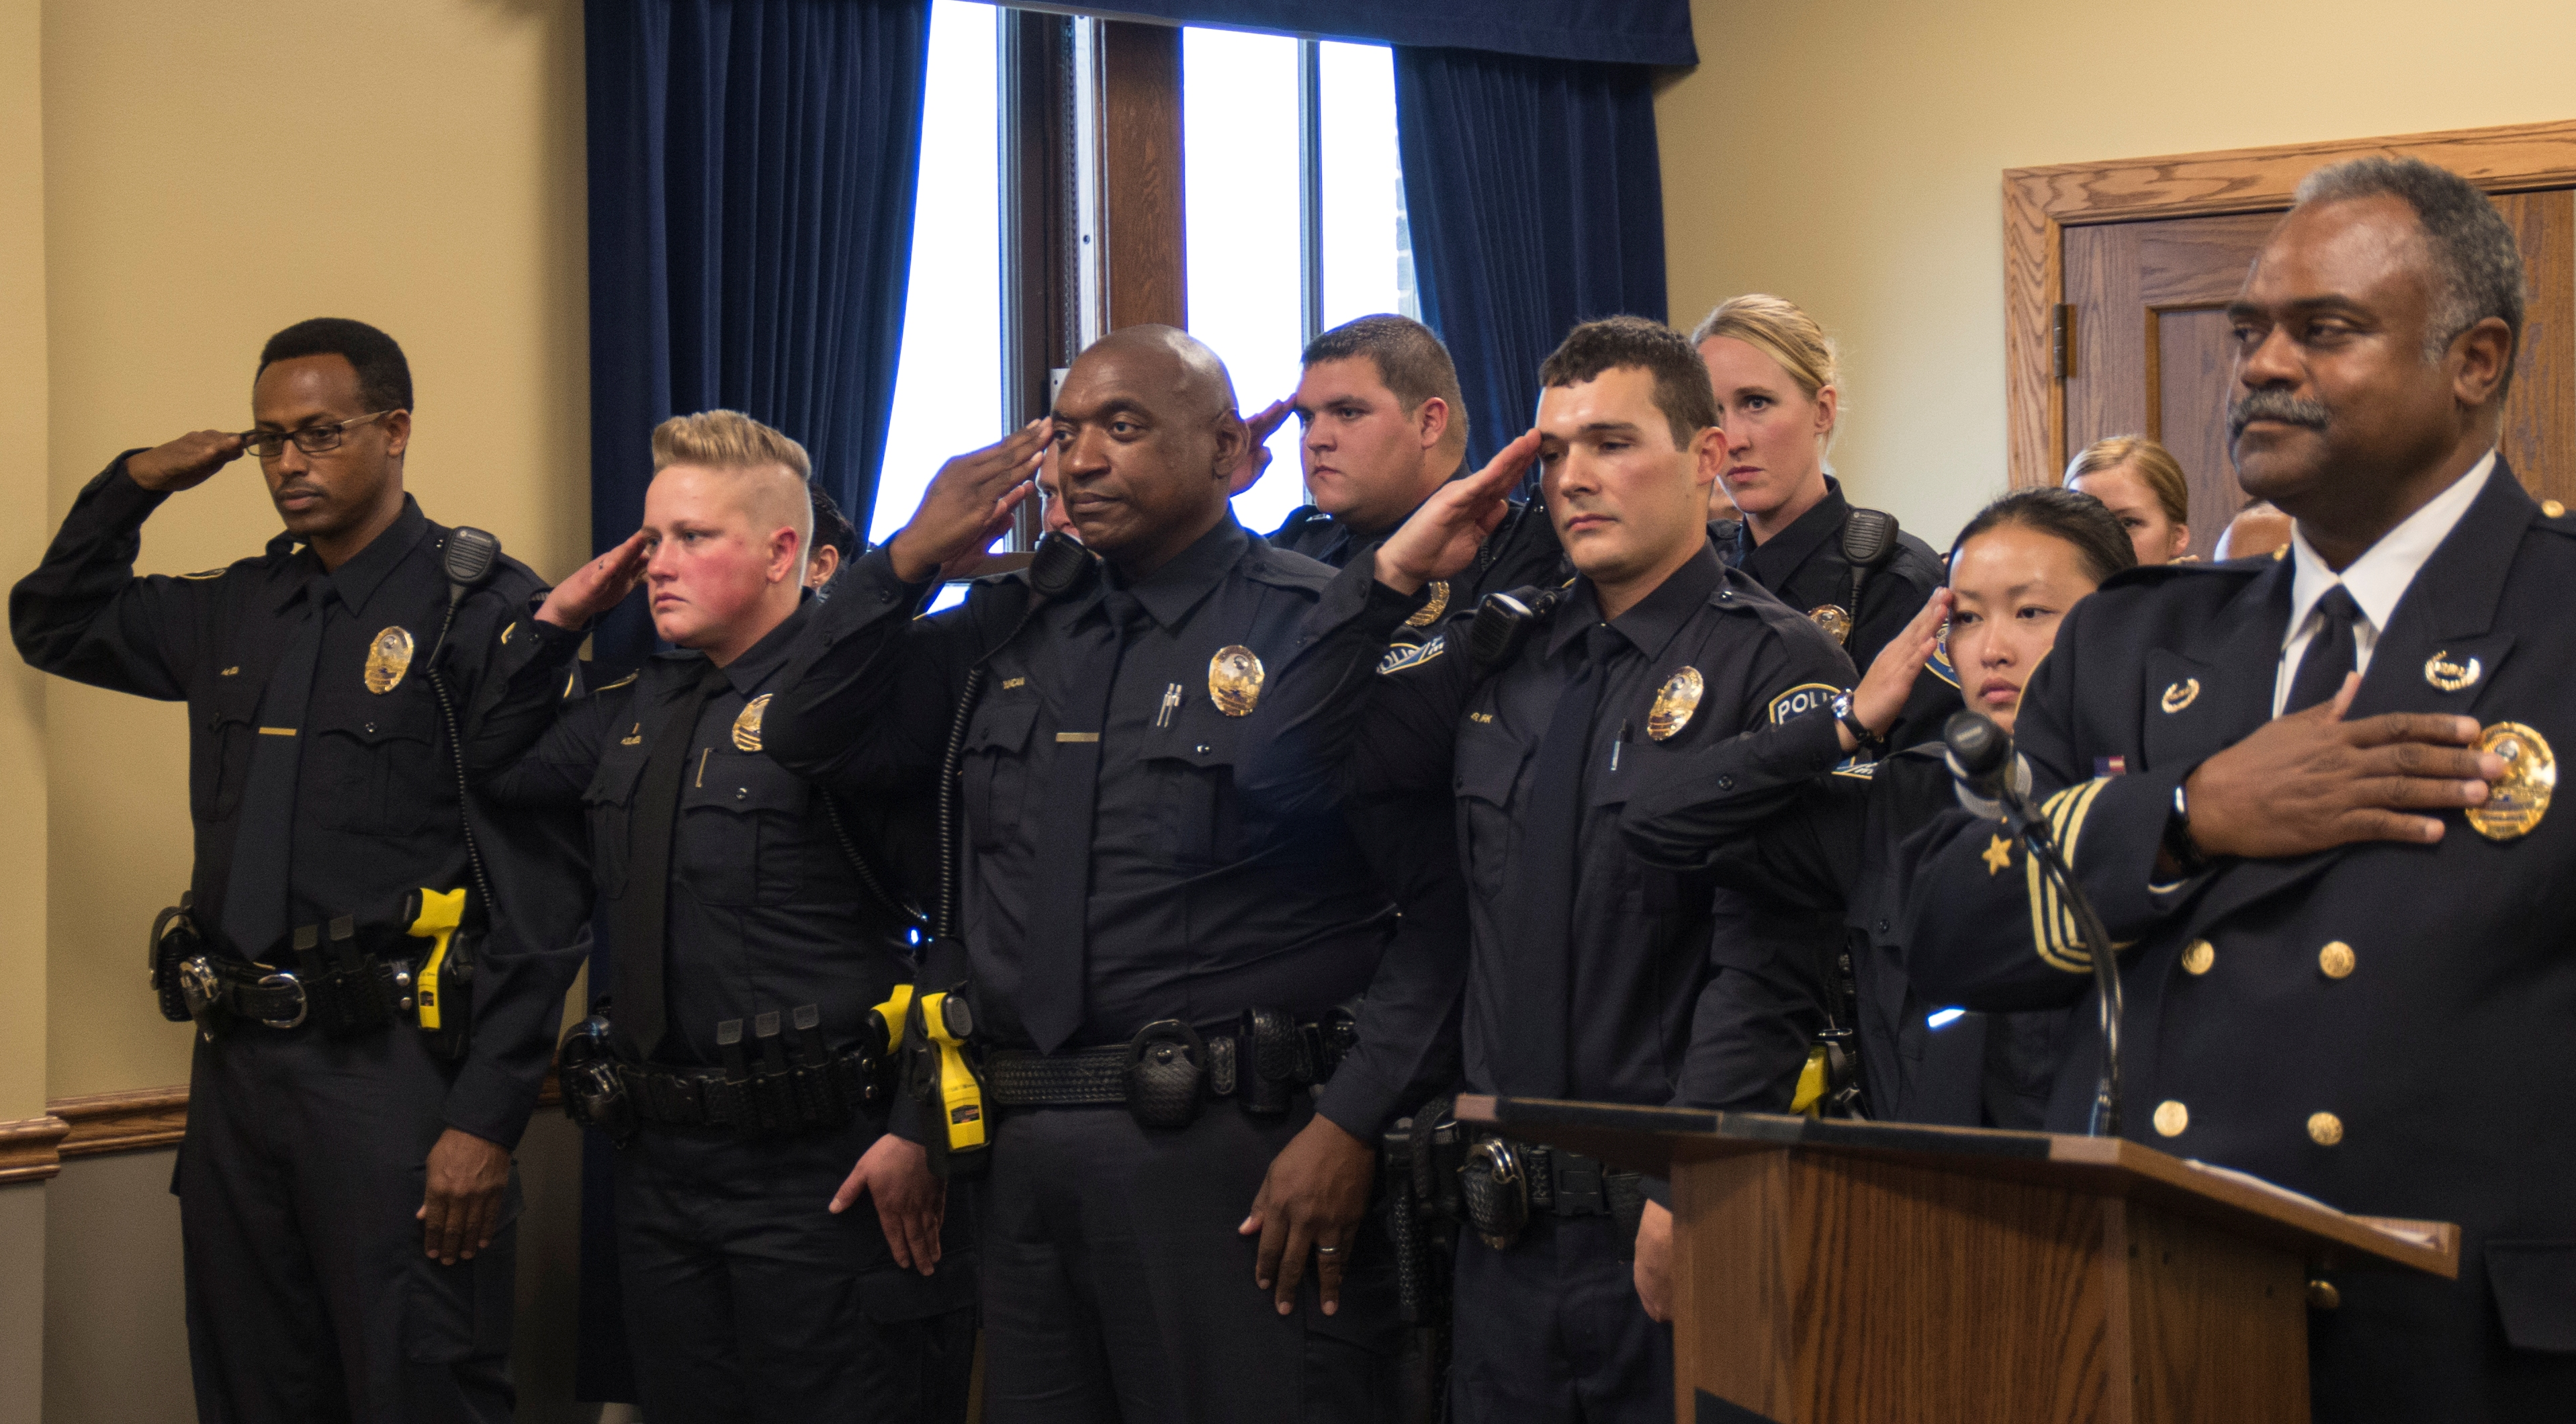 Metro Transit Police Chief John Harrington and officers at a swearing-in ceremony at the Union Depot on Thursday, Nov. 5, 2015.